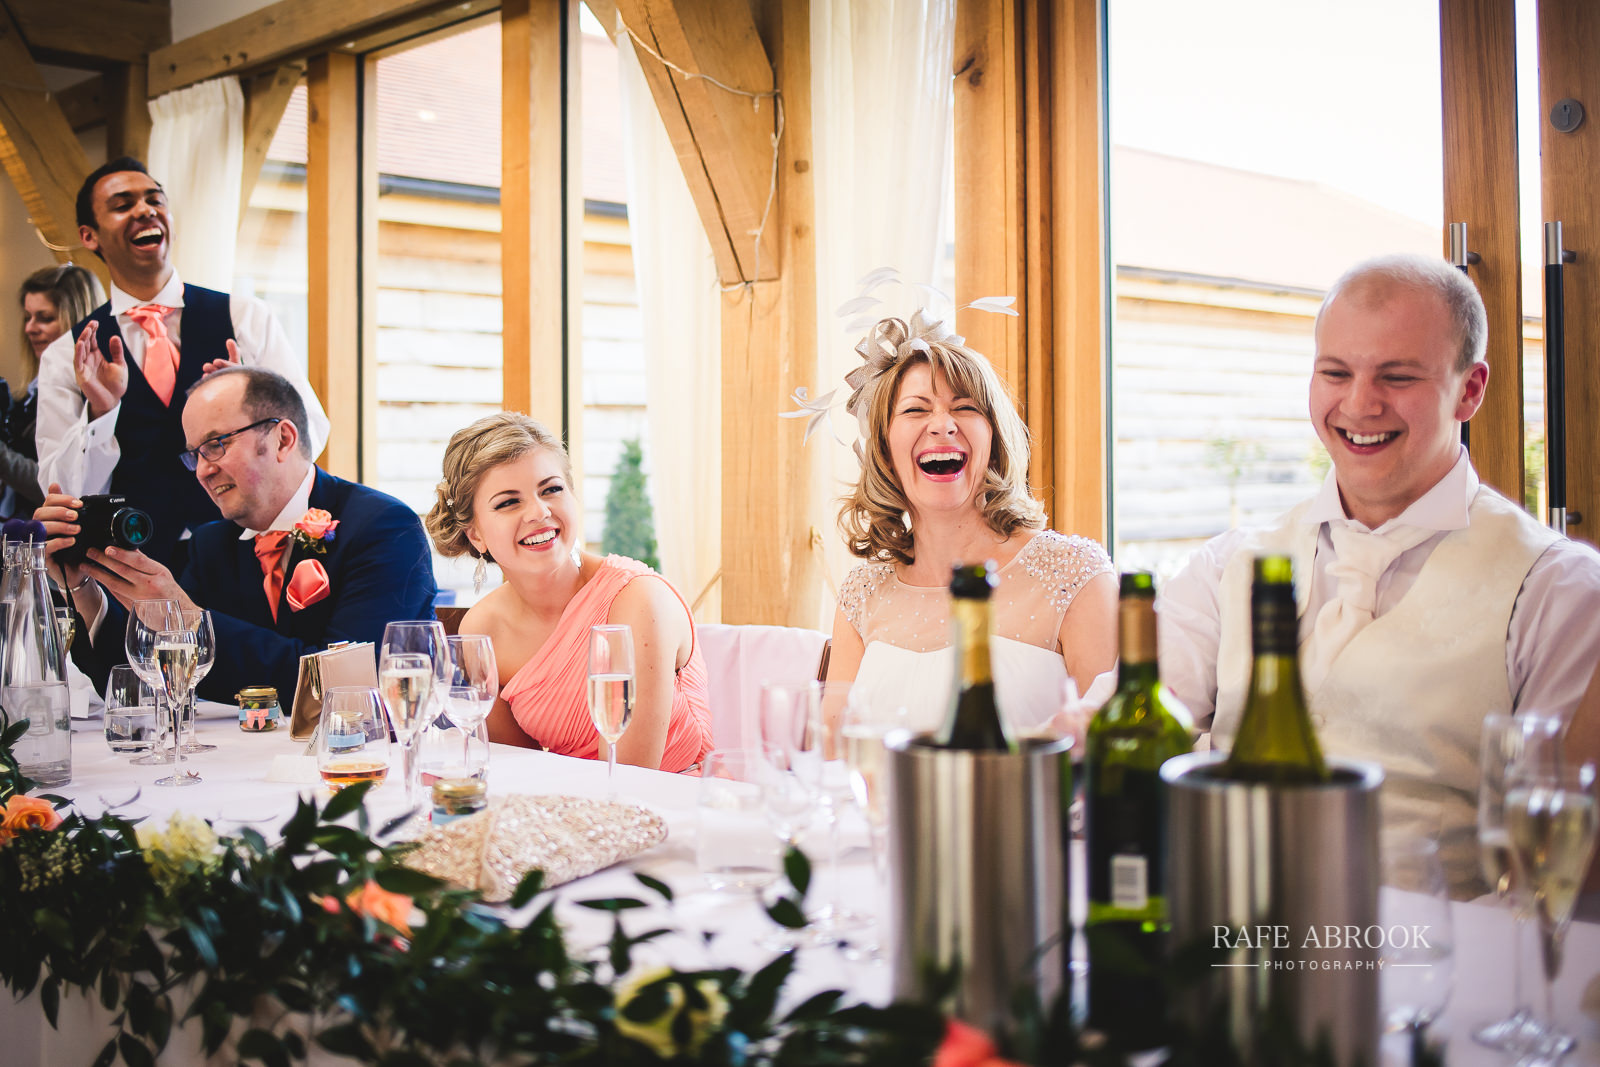 bassmead manor barns wedding st neots cambridgeshire hertfordshire wedding photographer rafe abrook-1590.jpg